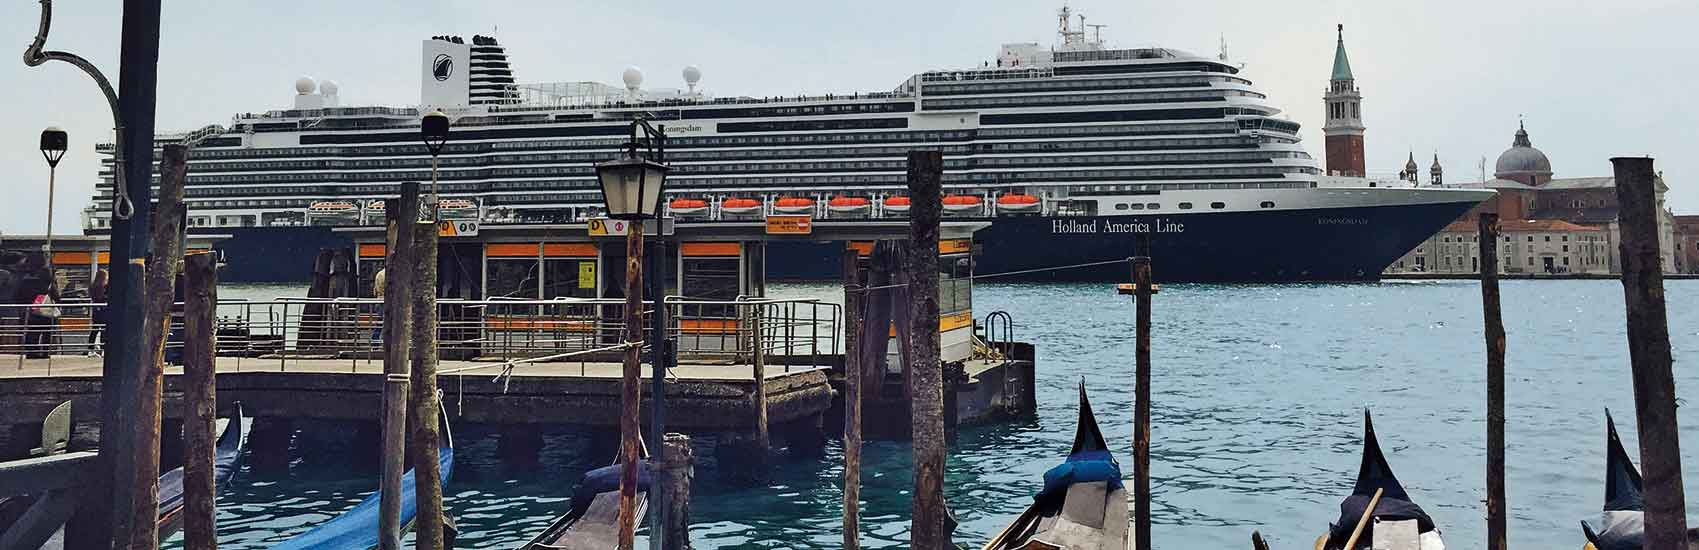 Save Now Cruise Later with Holland America